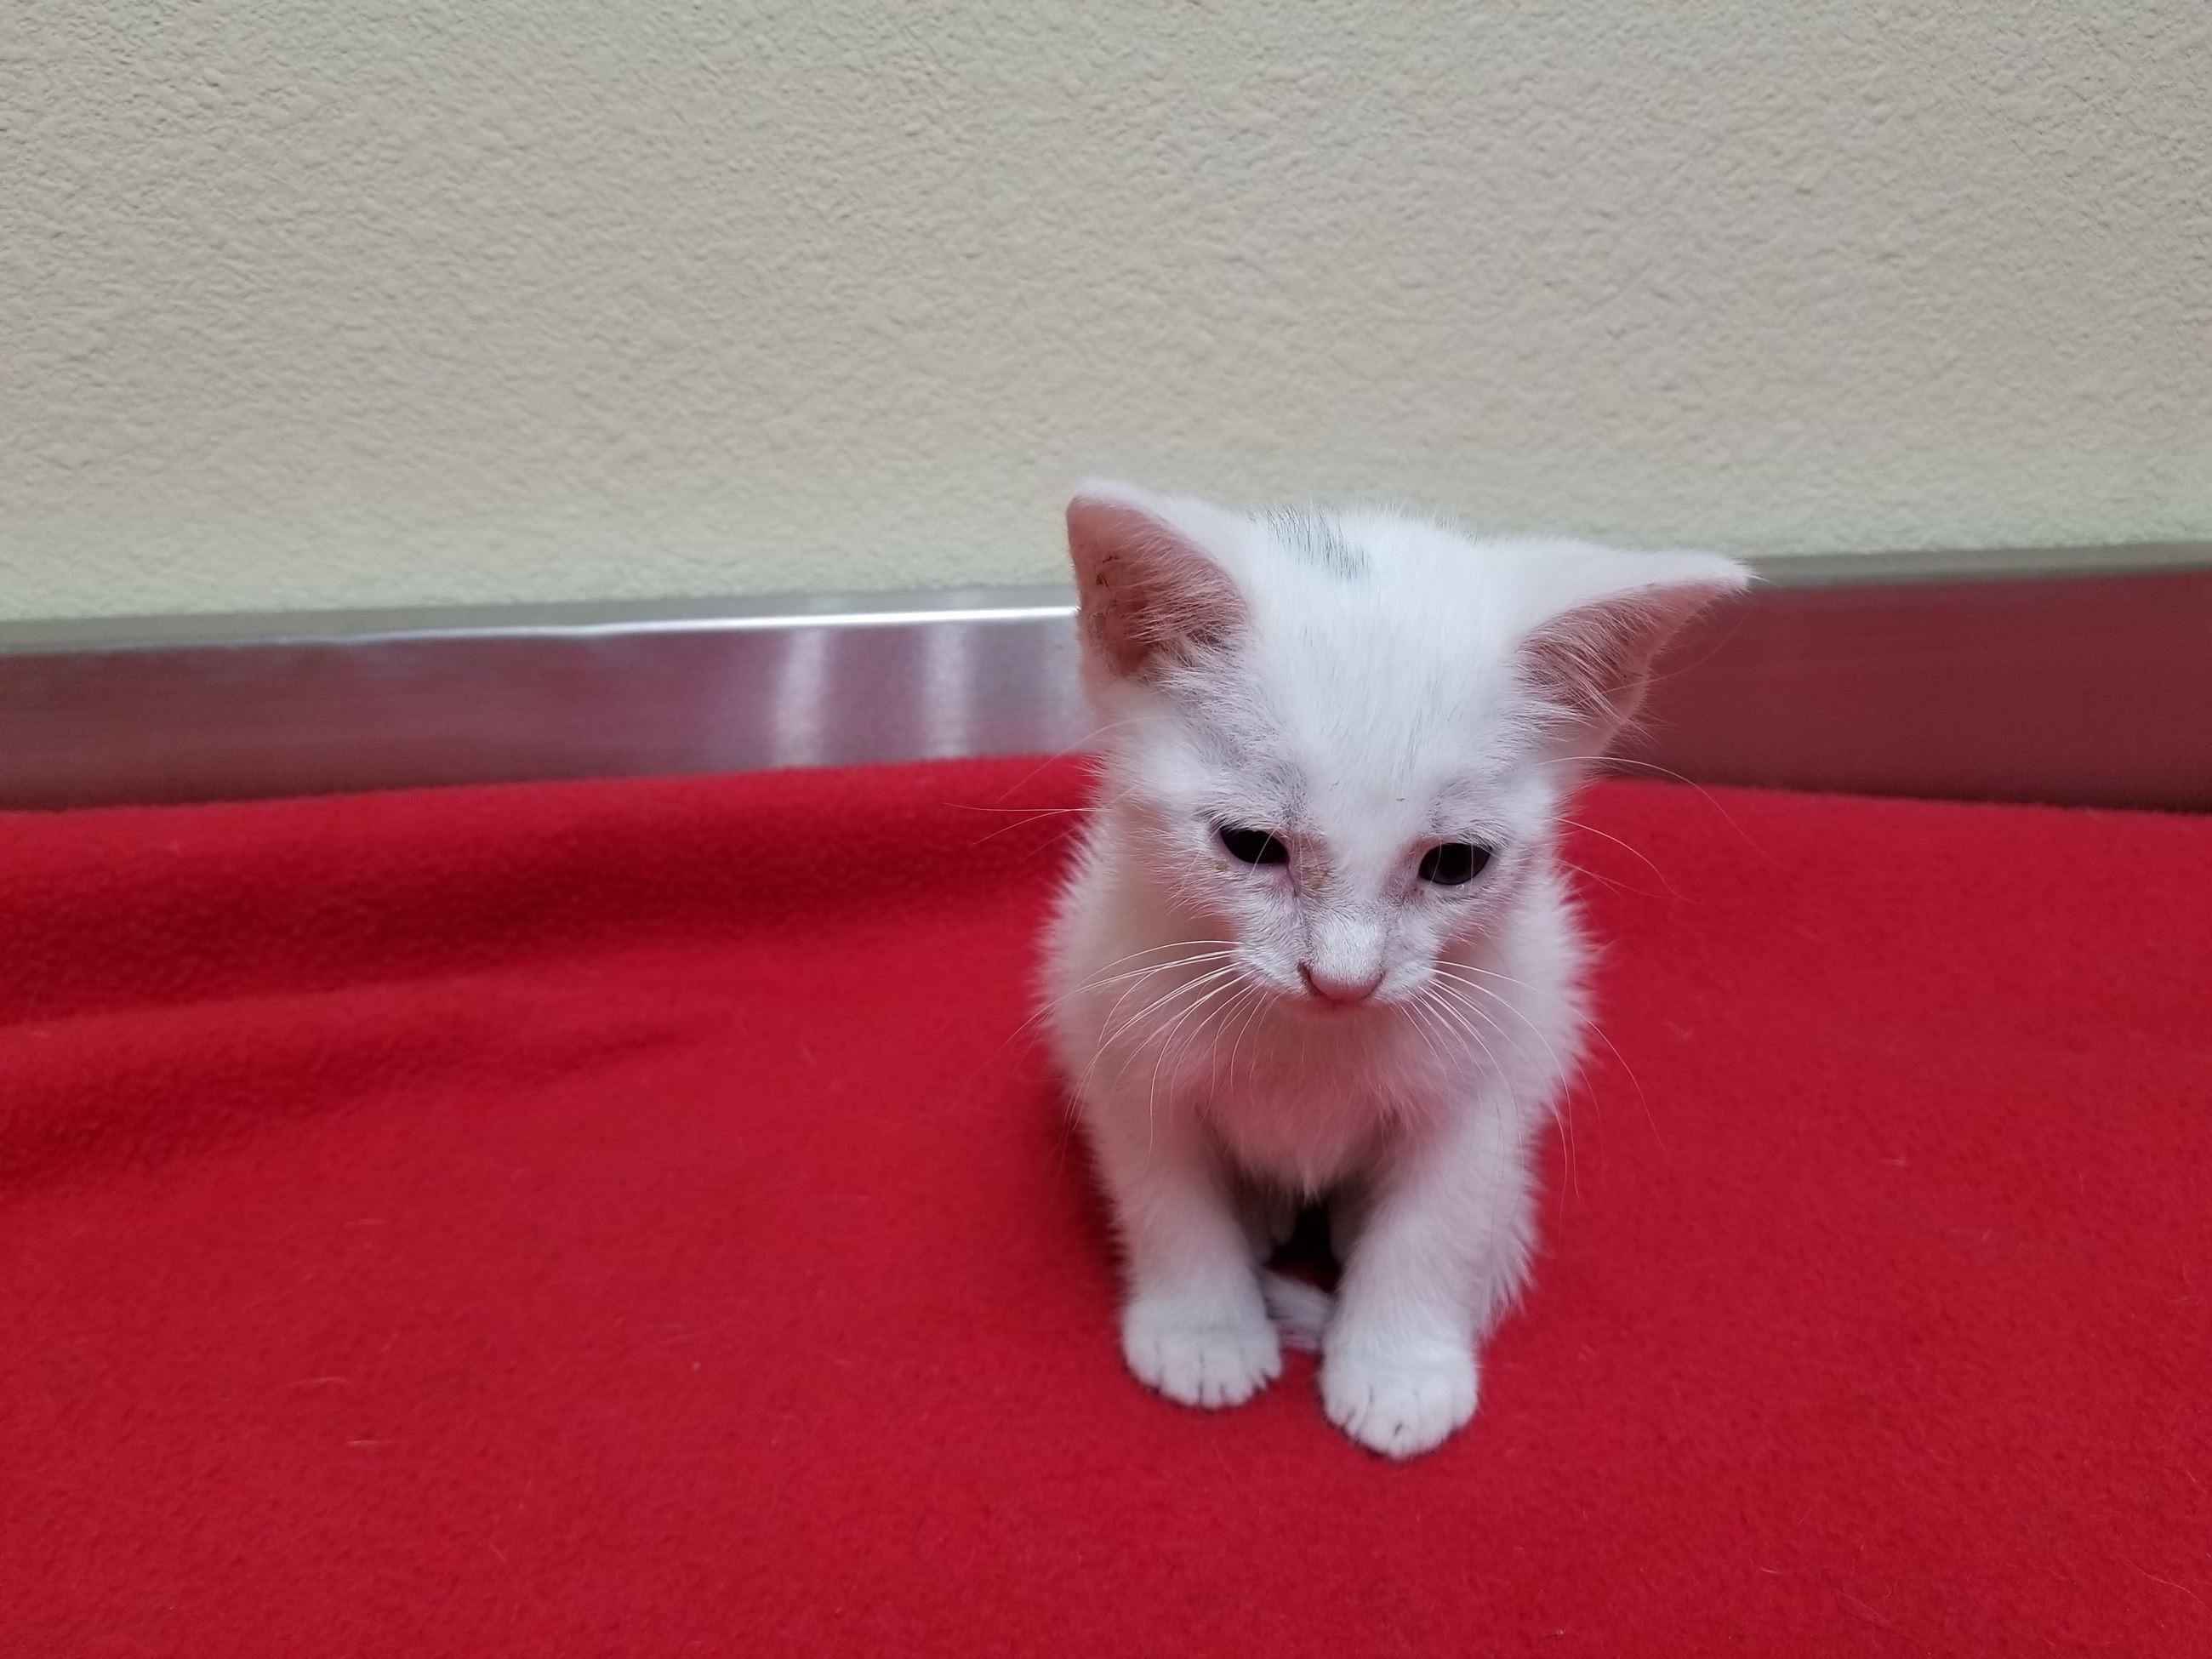 Prince 17-474 male solid white 6 week old kitten